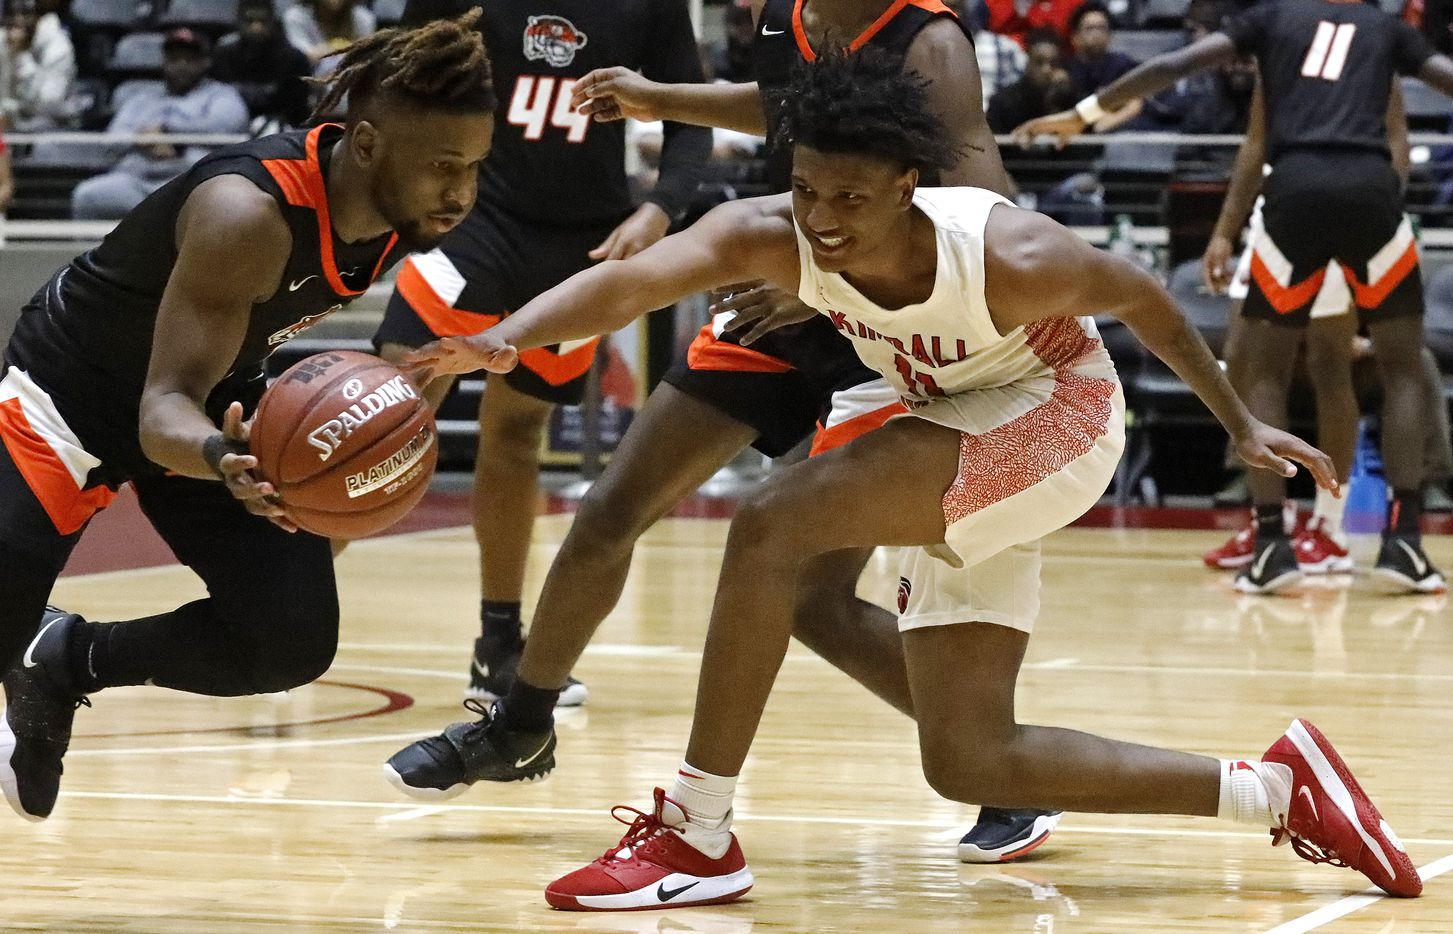 Lancaster High School guard Mike Miles (1) steals the ball from Kimball High School forward Cory Reynolds (11) during the second half as Kimball High School played Lancaster High School for the Class 5A Region II championship at the Curtis Colwell Center in Garland on Saturday, March 7, 2020.